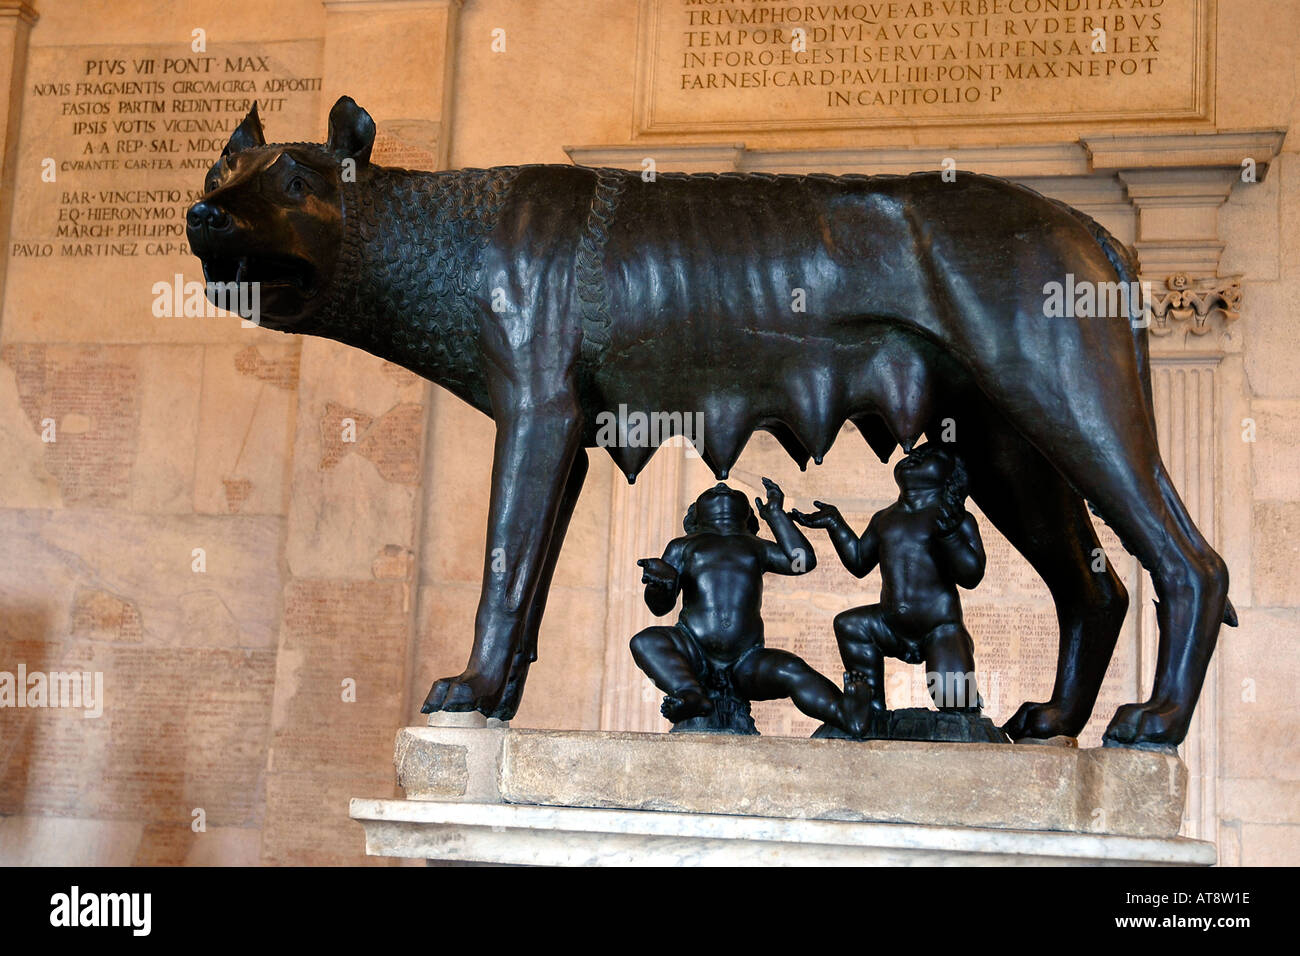 Etruscan bronze statue of the legendary she-wolf suckling twins Romulus and Remus, symbol of Rome, in the Capitoline - Stock Image